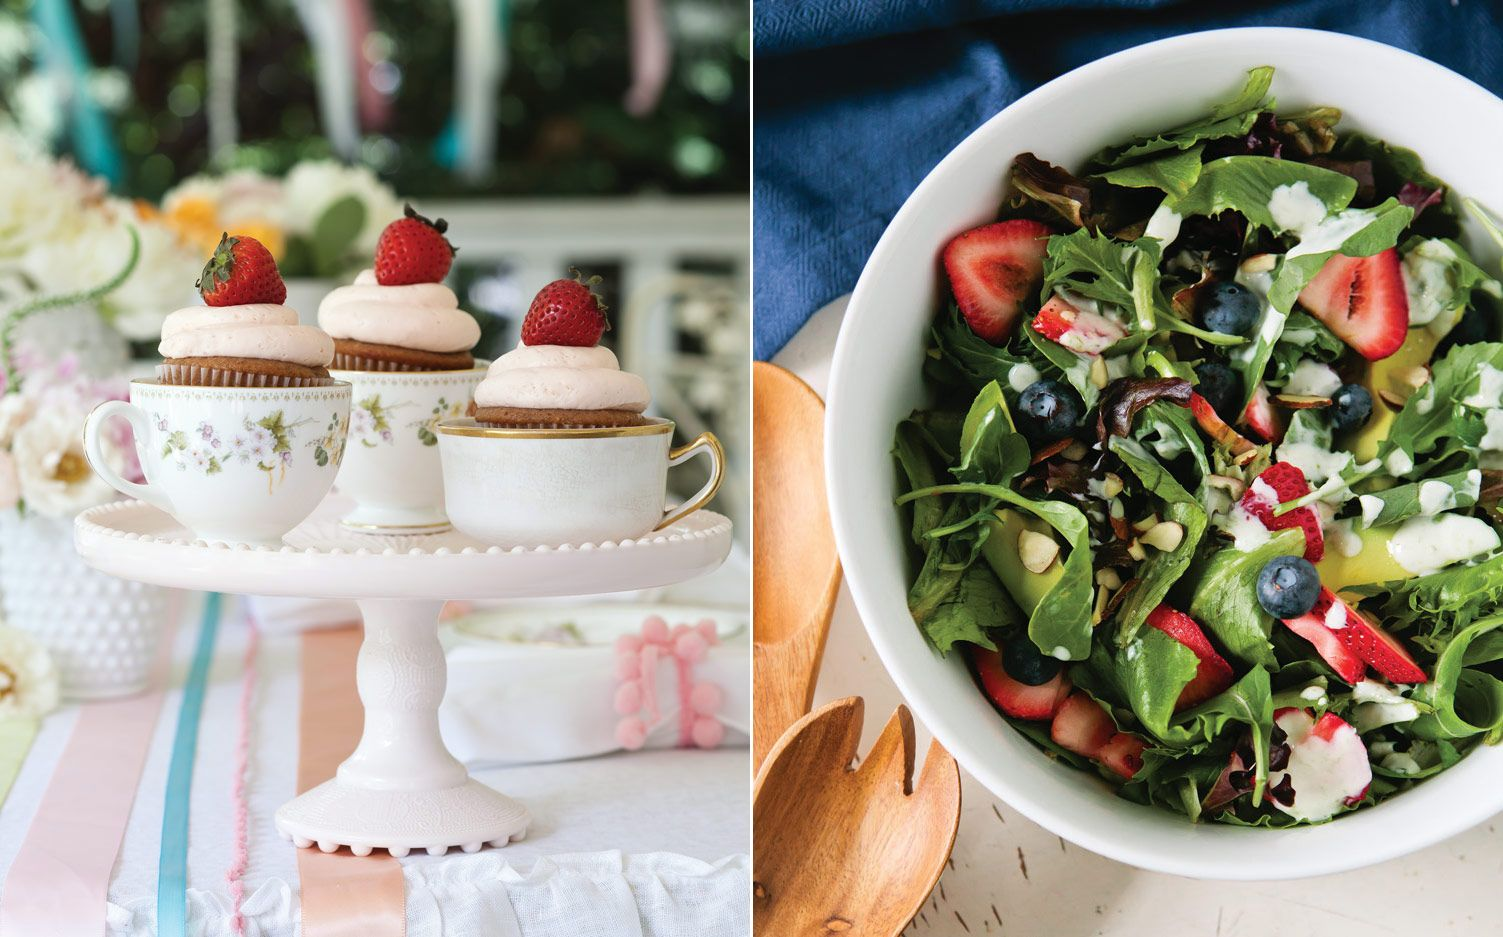 From cupcakes to ice cream to a zesty salad, we've compiled some of our favorite strawberry recipes to get you ready for spring.